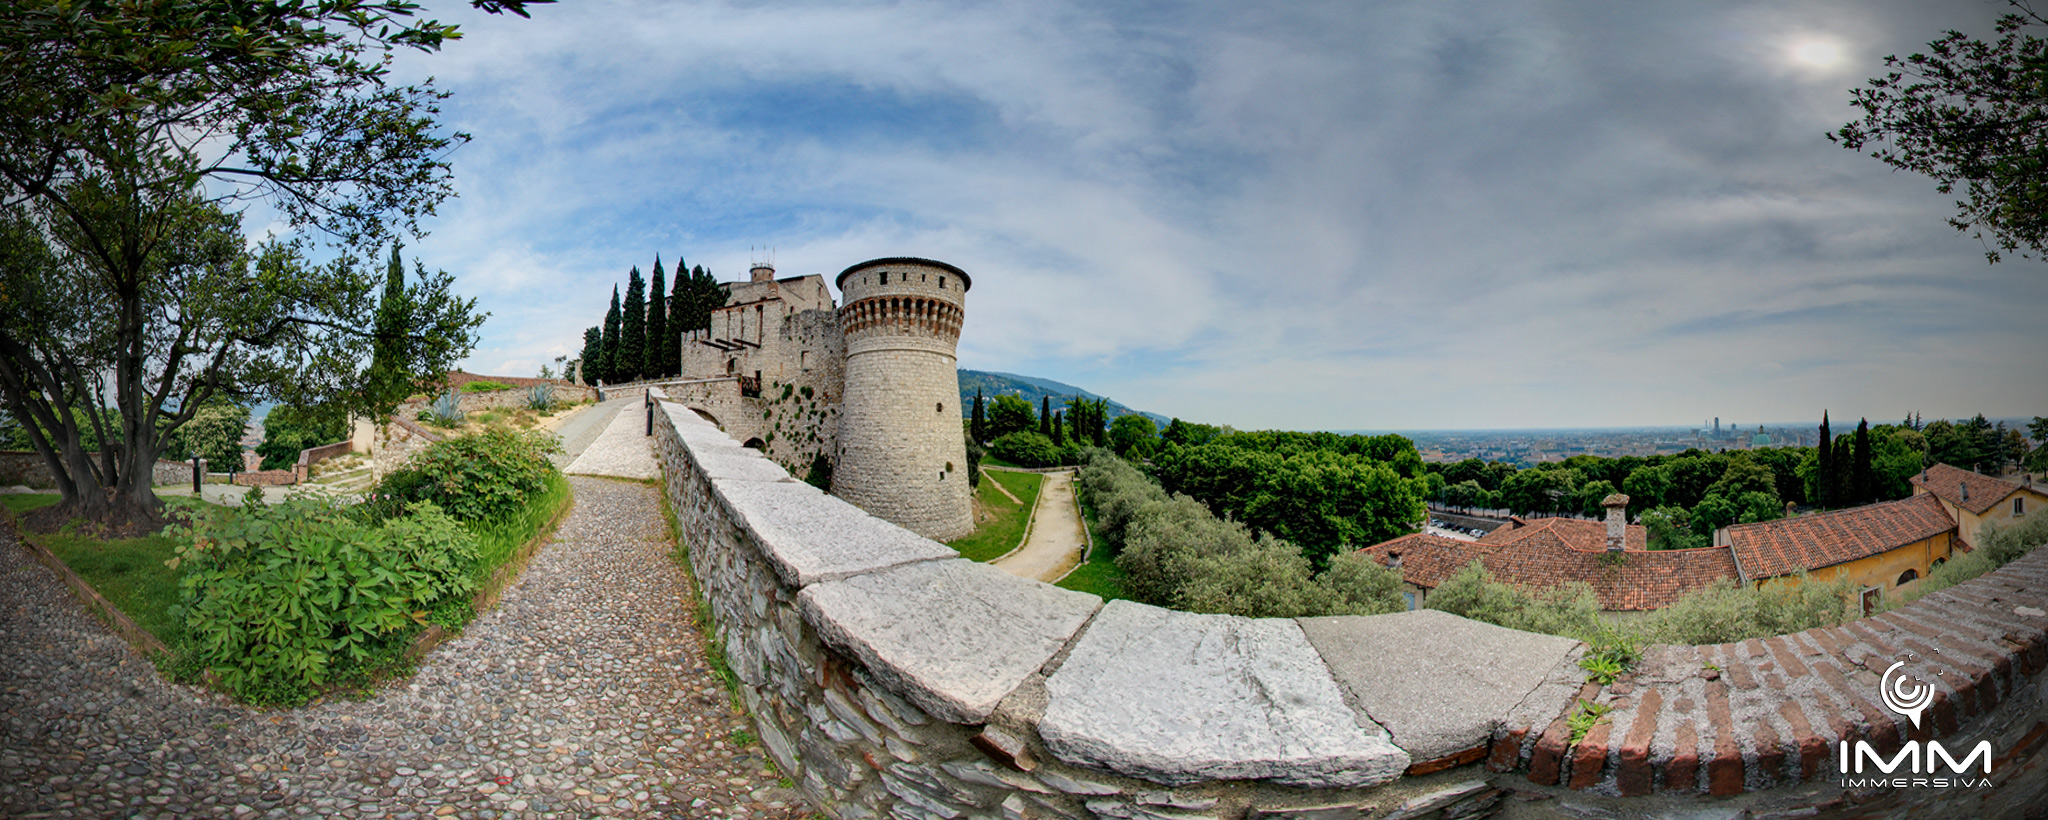 I nostri virtual tour immersivi - Rilievi e Panoramiche ad alta qualità